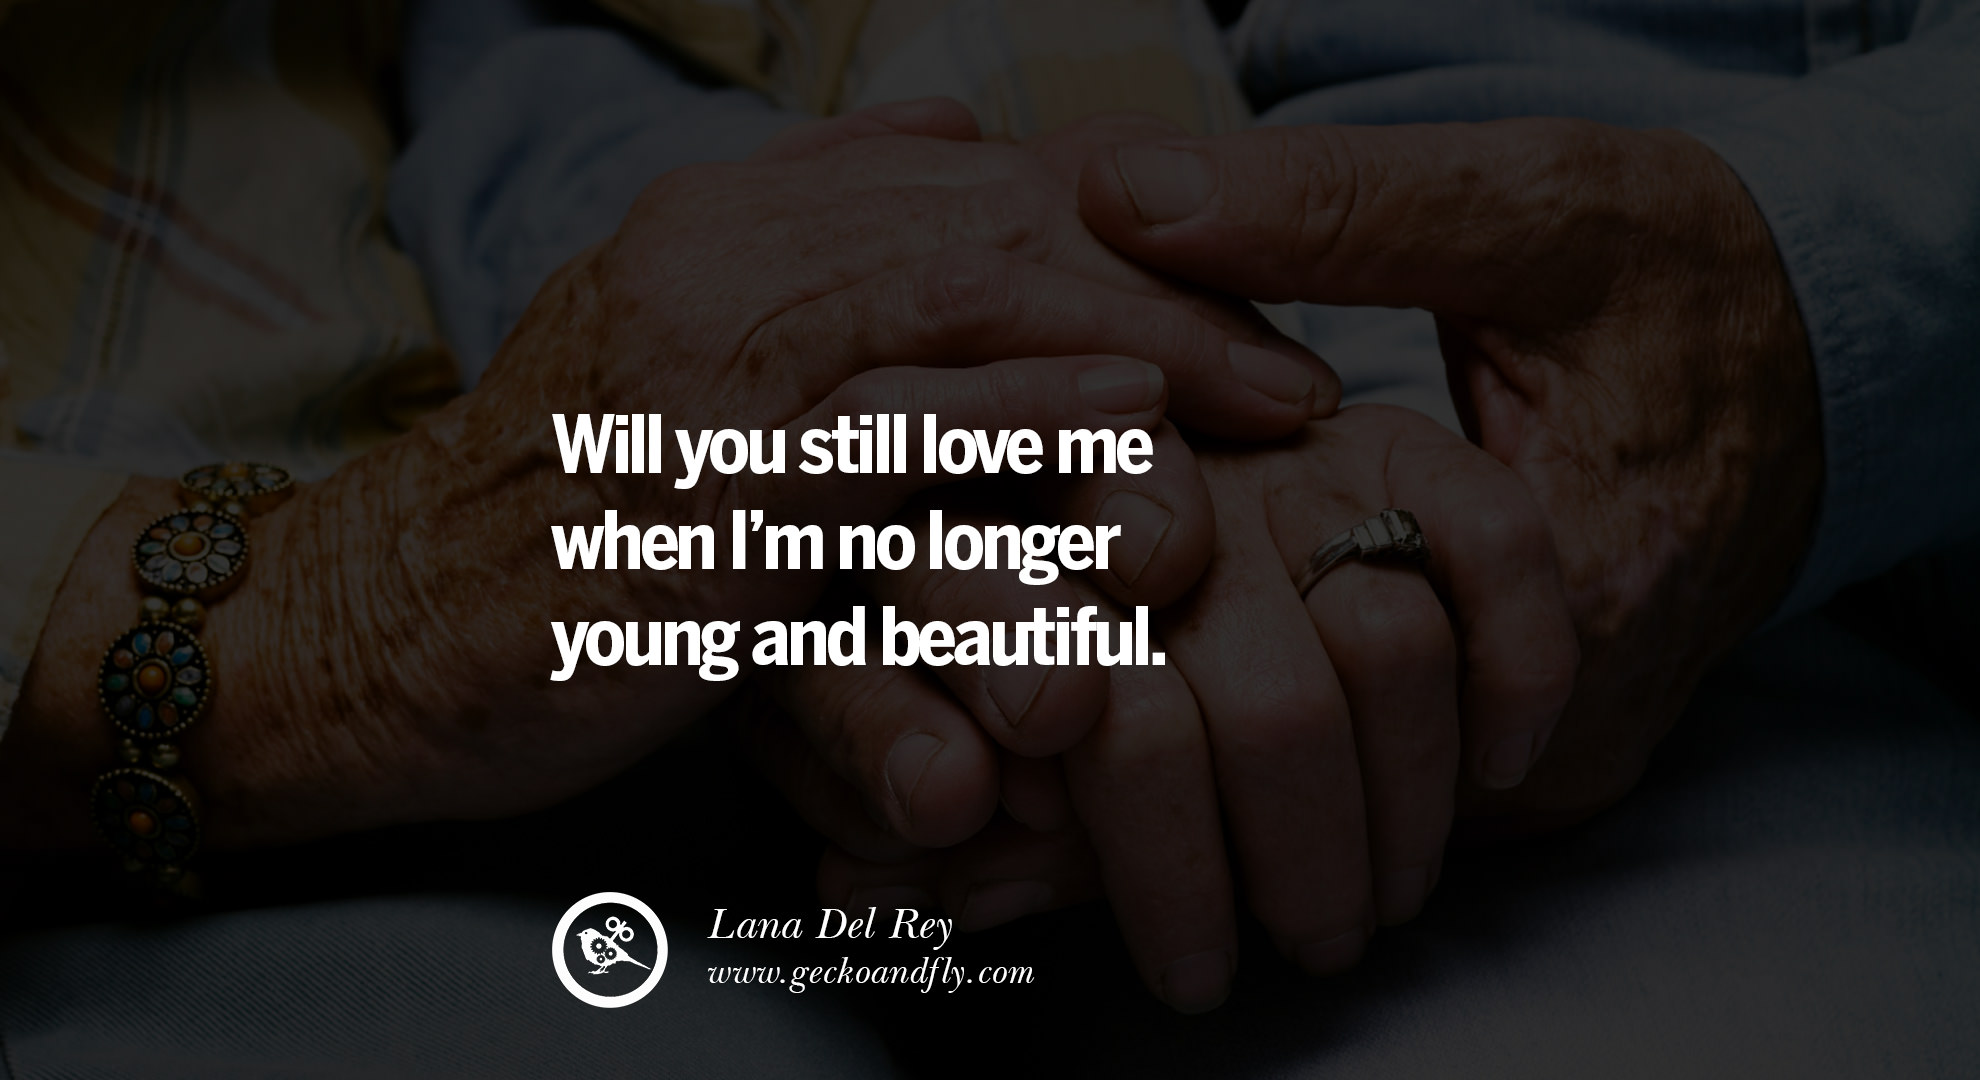 Image of: Relationships Will You Still Love Me When Im No Longer Young And Beautiful Geckoandfly 40 Romantic Quotes About Love Life Marriage And Relationships